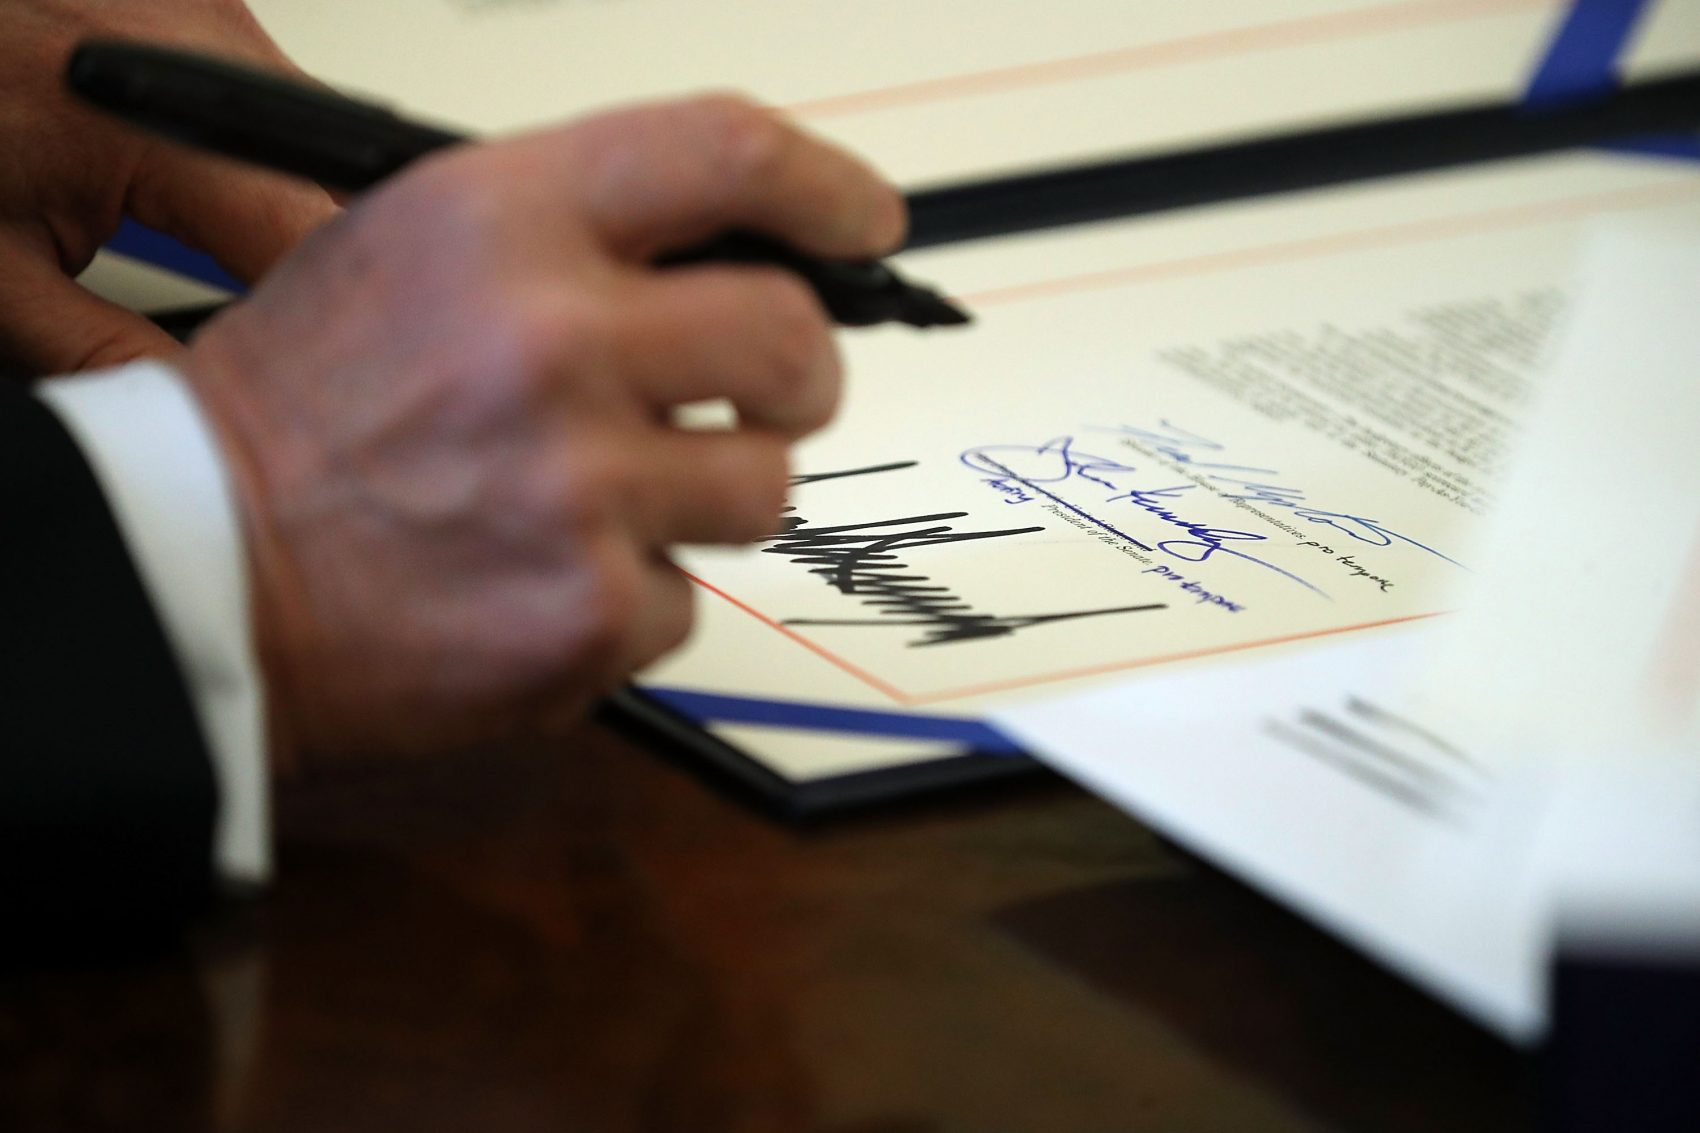 President Trump signs sweeping tax overhaul legislation into law in the Oval Office at the White House, Dec. 22, 2017 in Washington, D.C. (Chip Somodevilla/Getty Images)